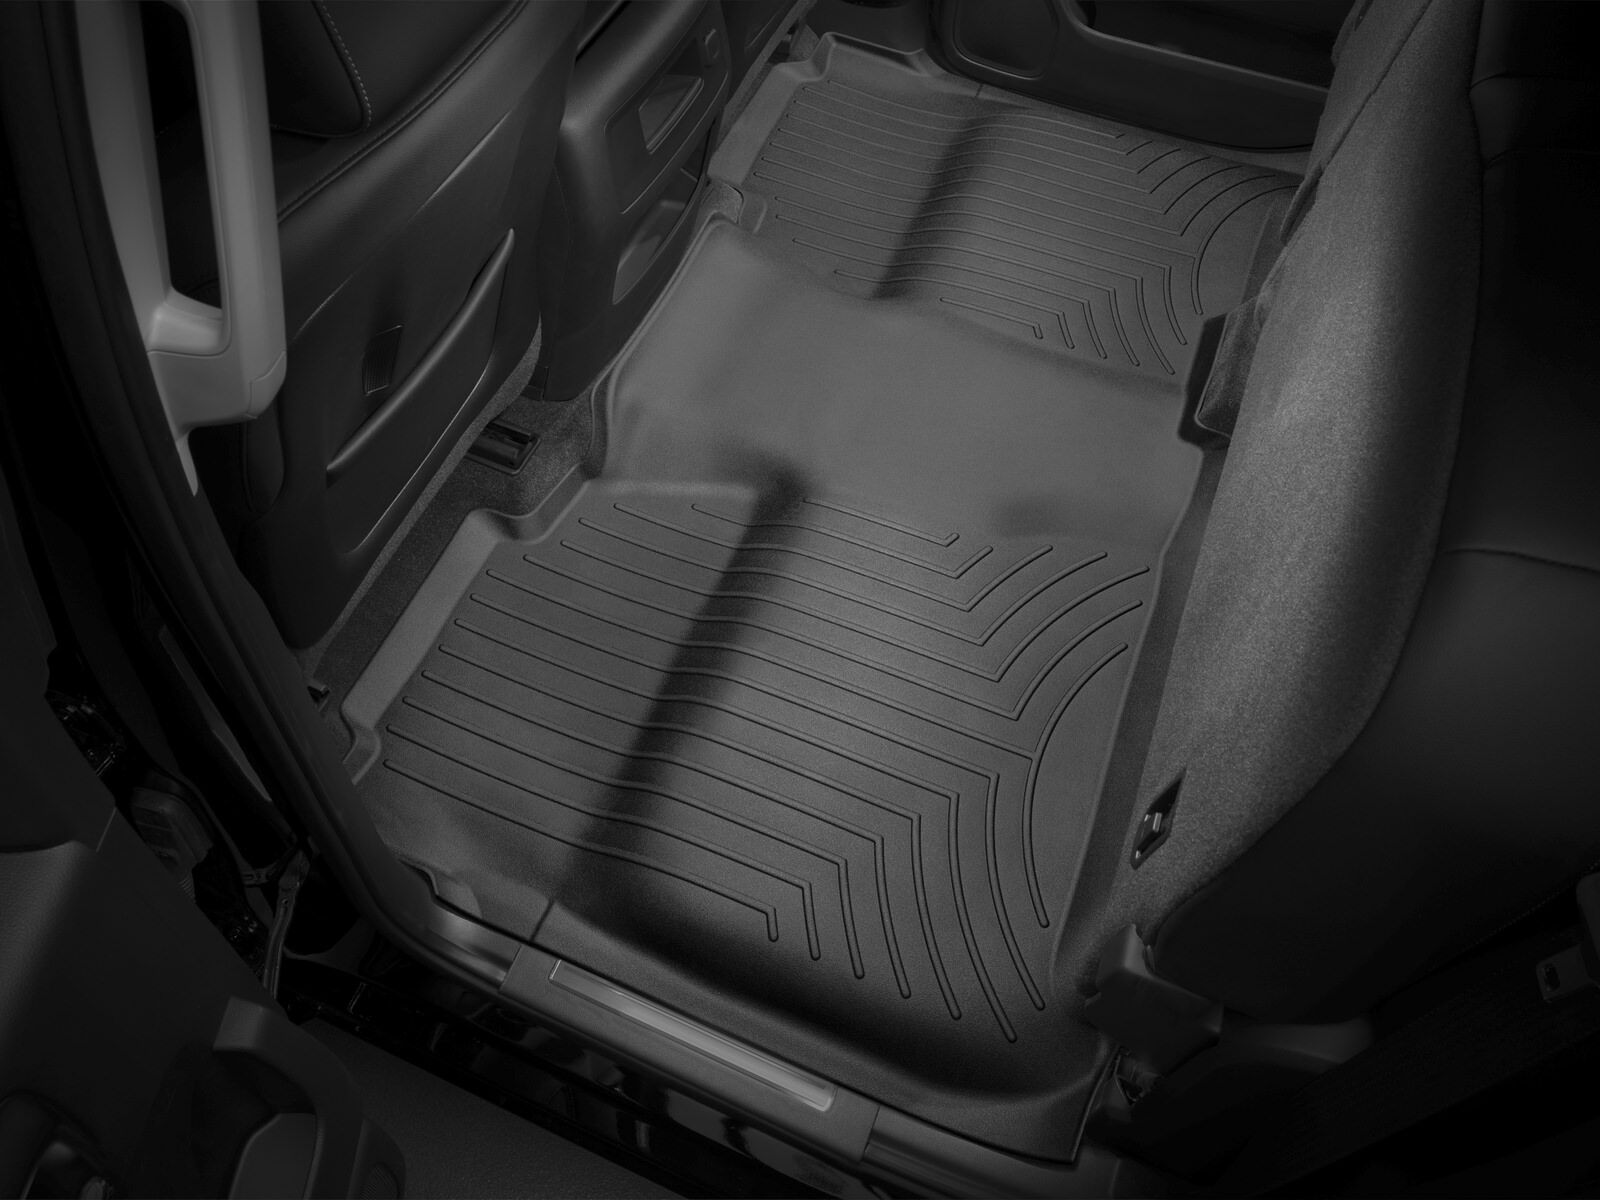 Details about WeatherTech Floor Mat FloorLiner for Chevy Silverado/GMC  Sierra Crew Cab - Black